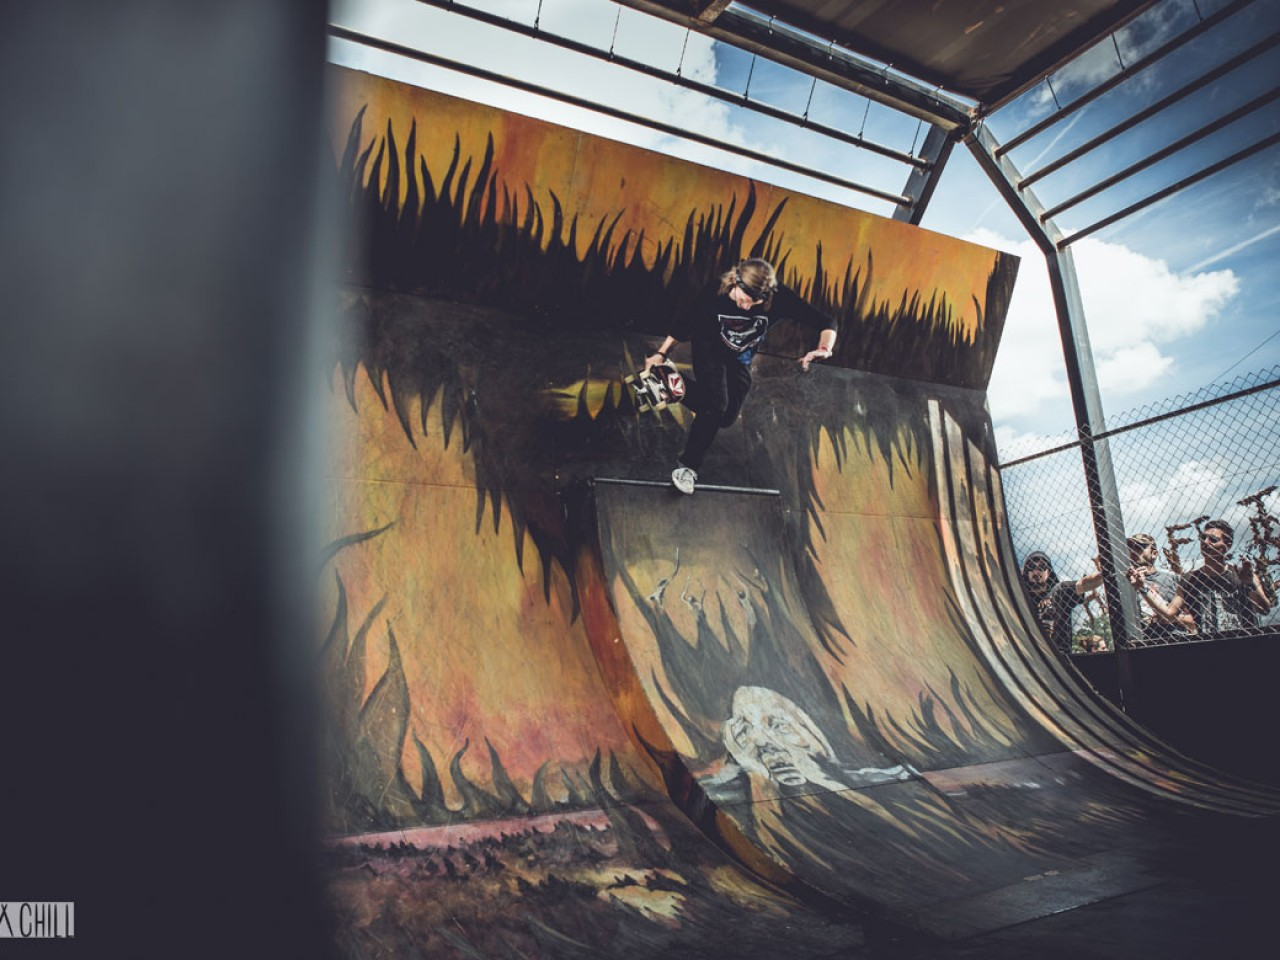 SKATE-WALL-CROSS-DA-CRUZ-SKATEPARK-MADNEOM-HELLFEST-2015